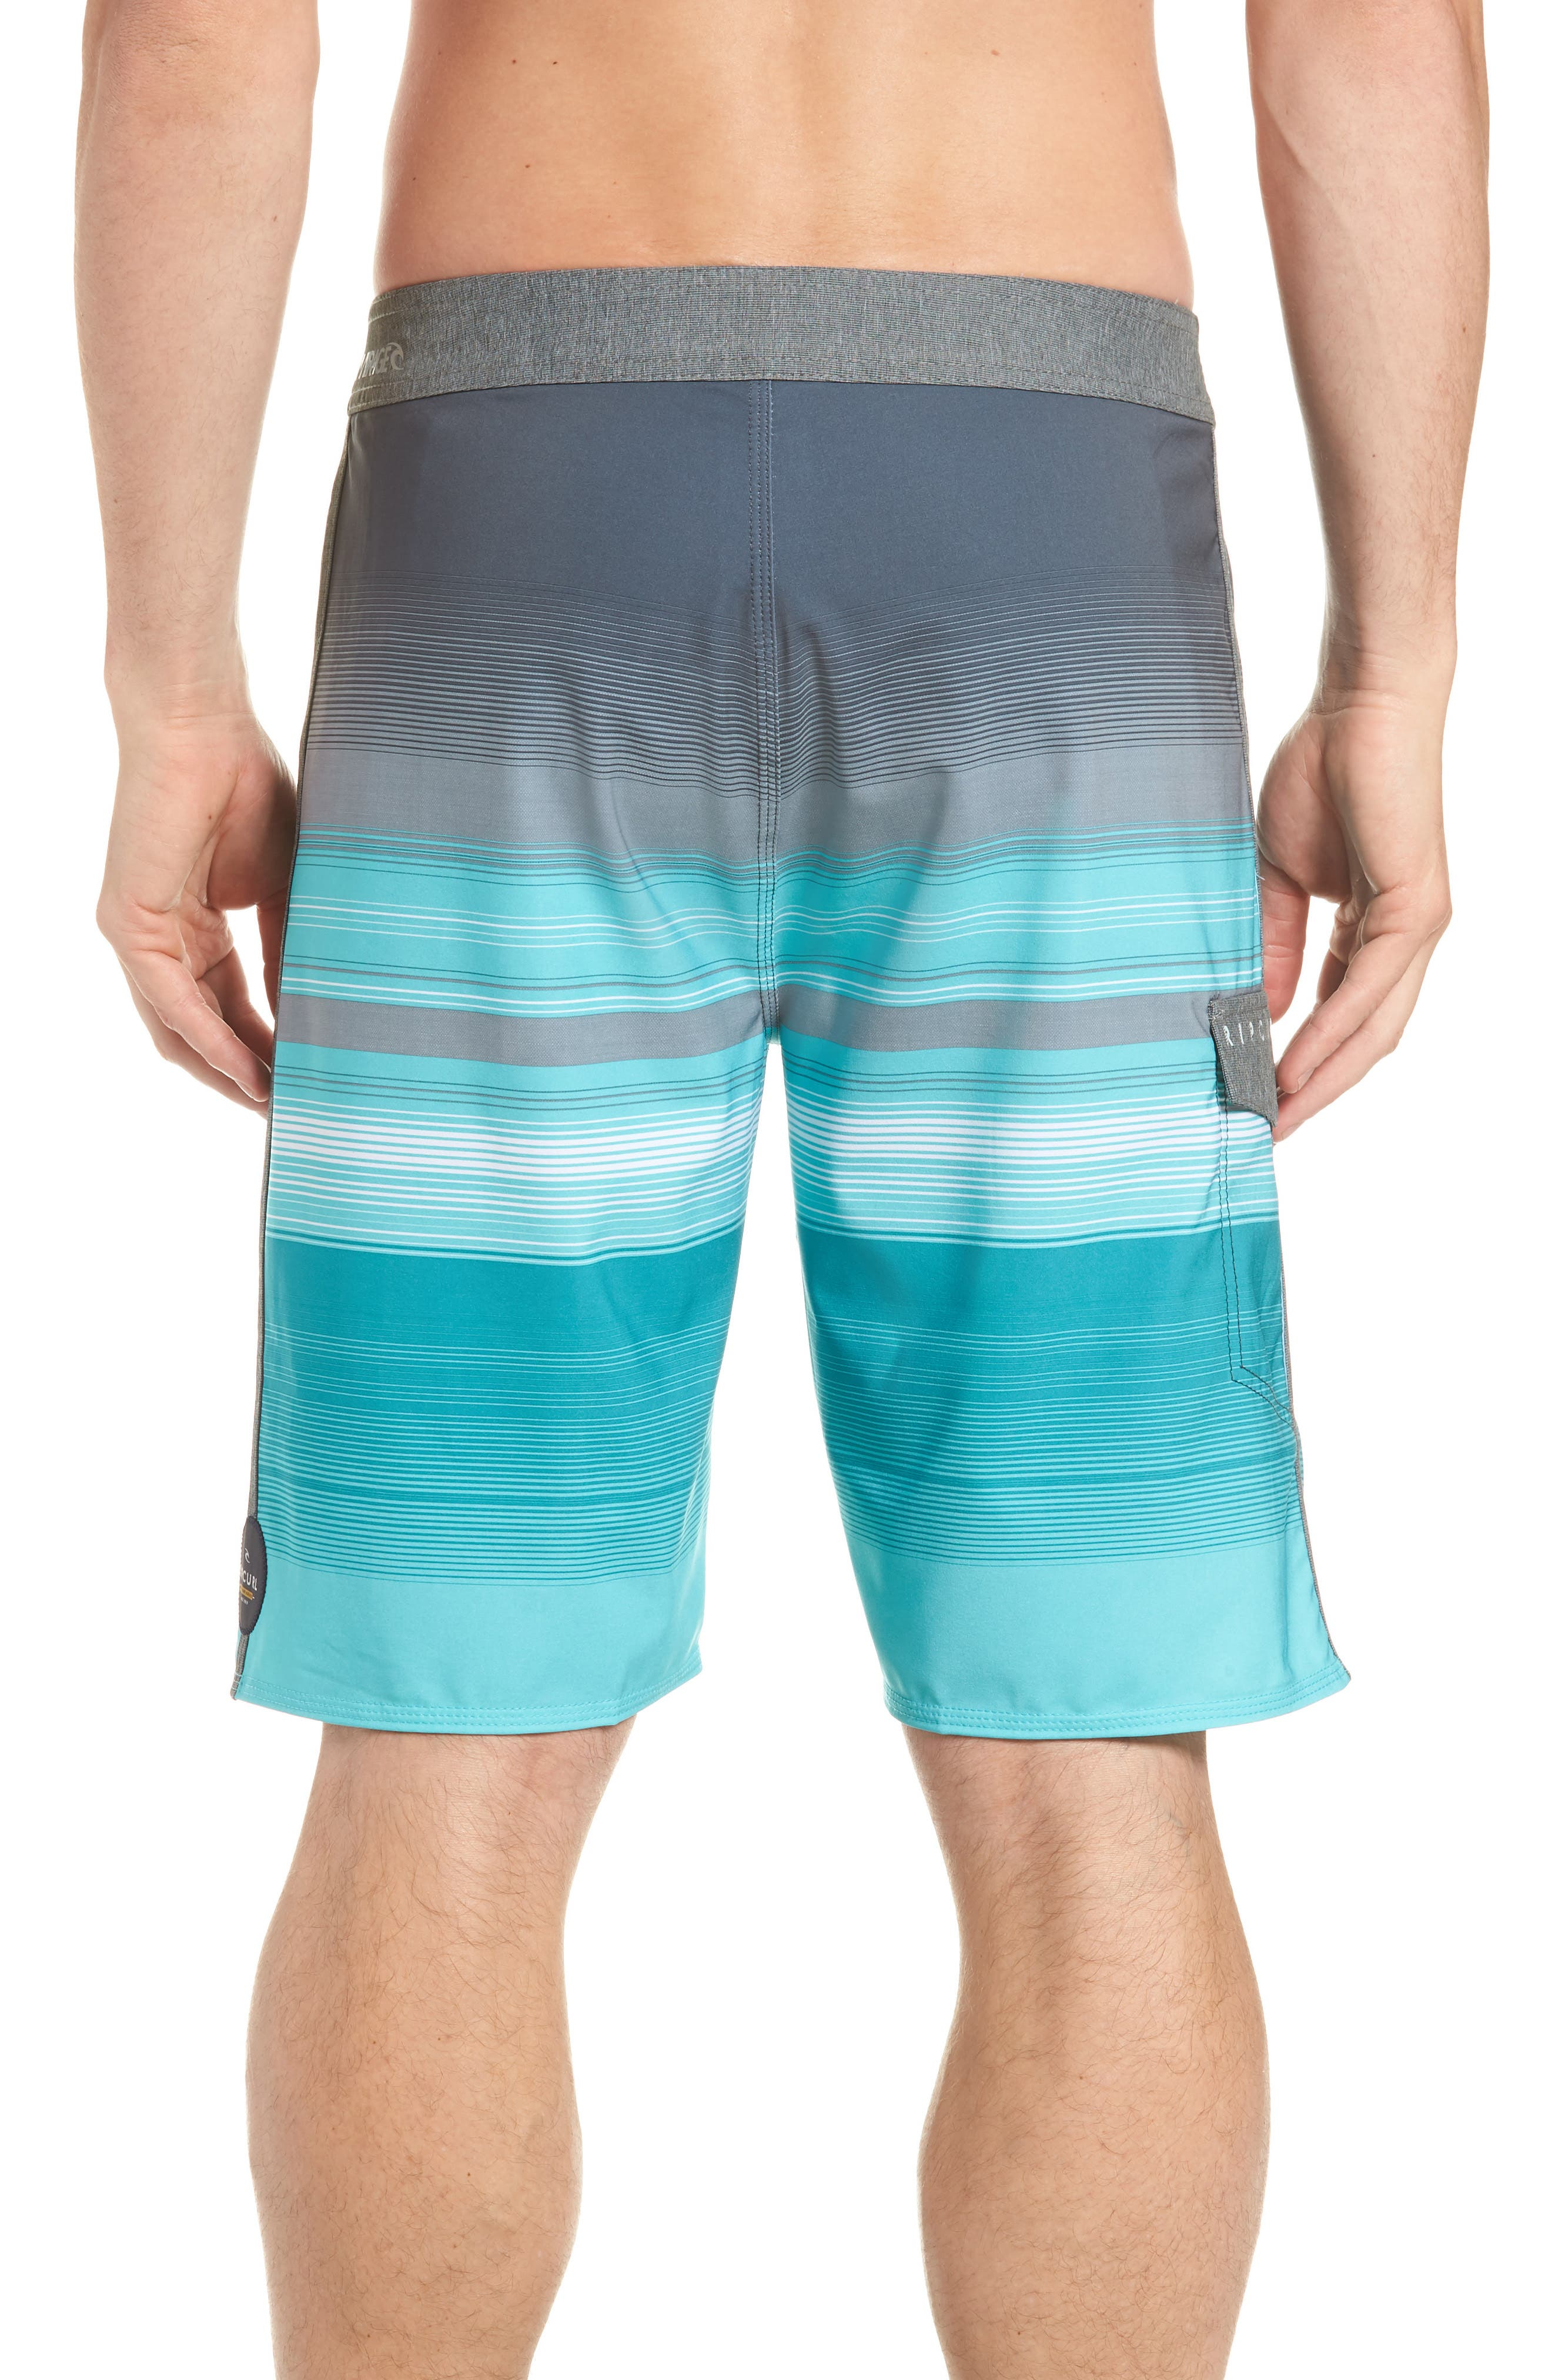 Mirage Accelerate Board Shorts,                             Alternate thumbnail 2, color,                             Teal